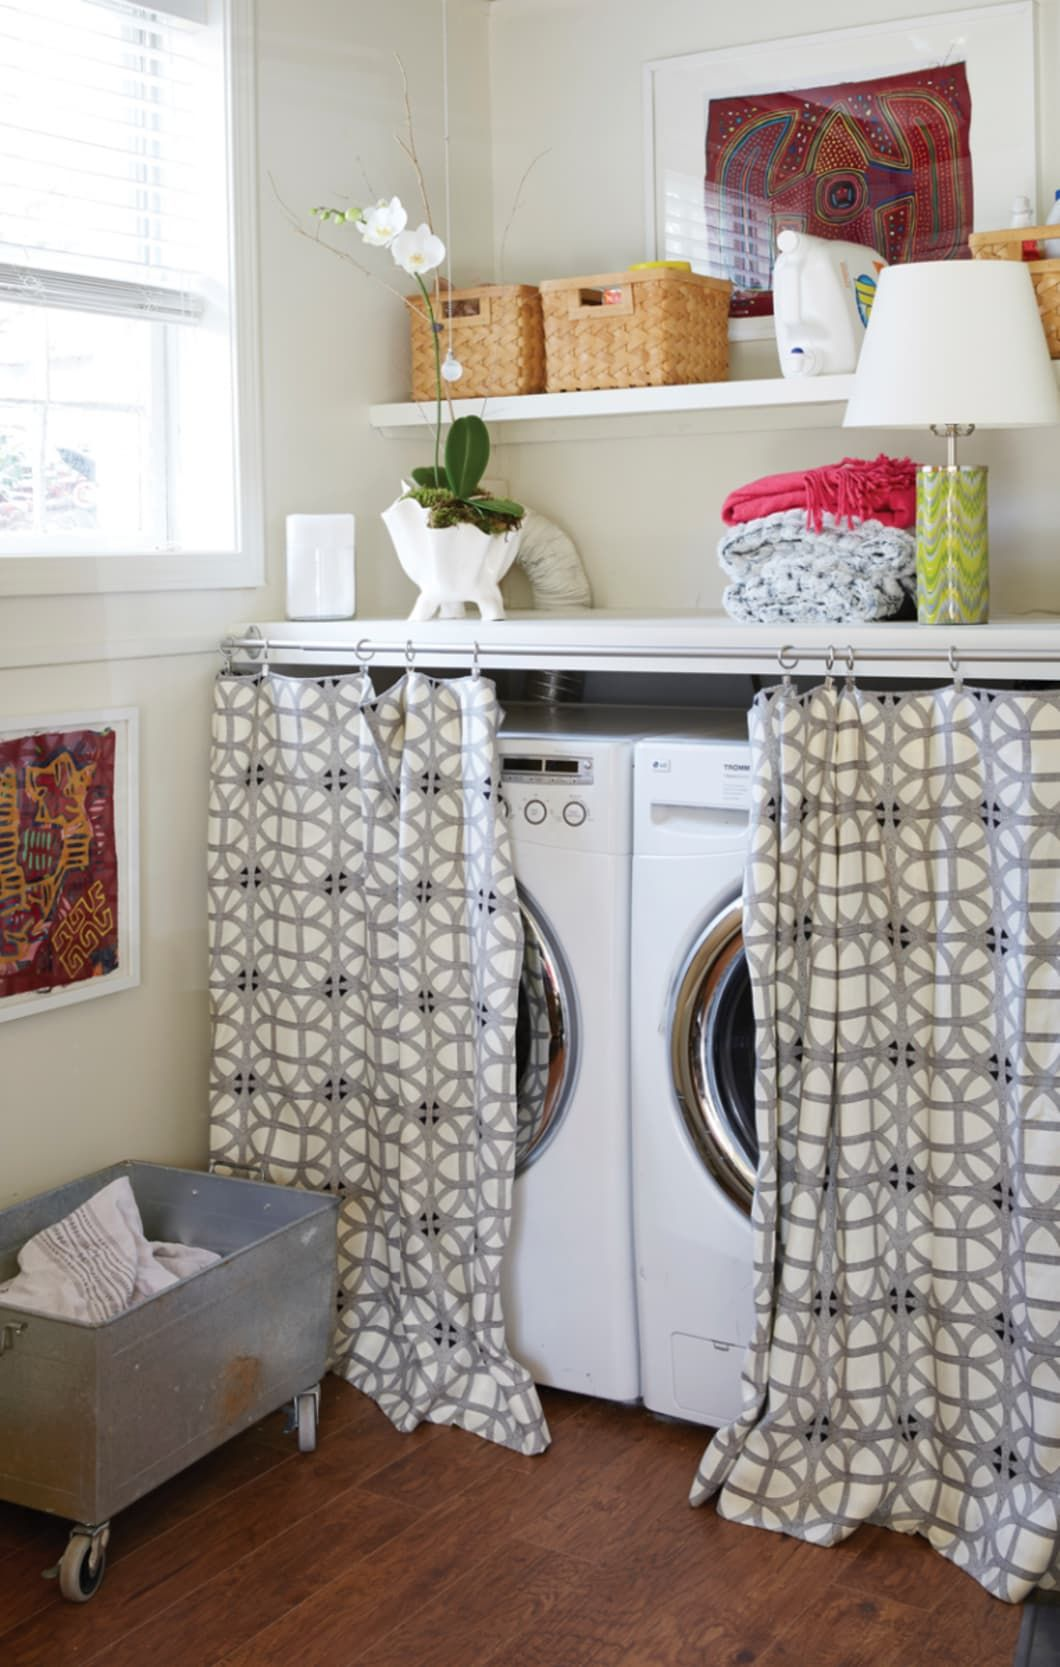 Washer and dryer hidden behind drapes and galvanized laundry cart